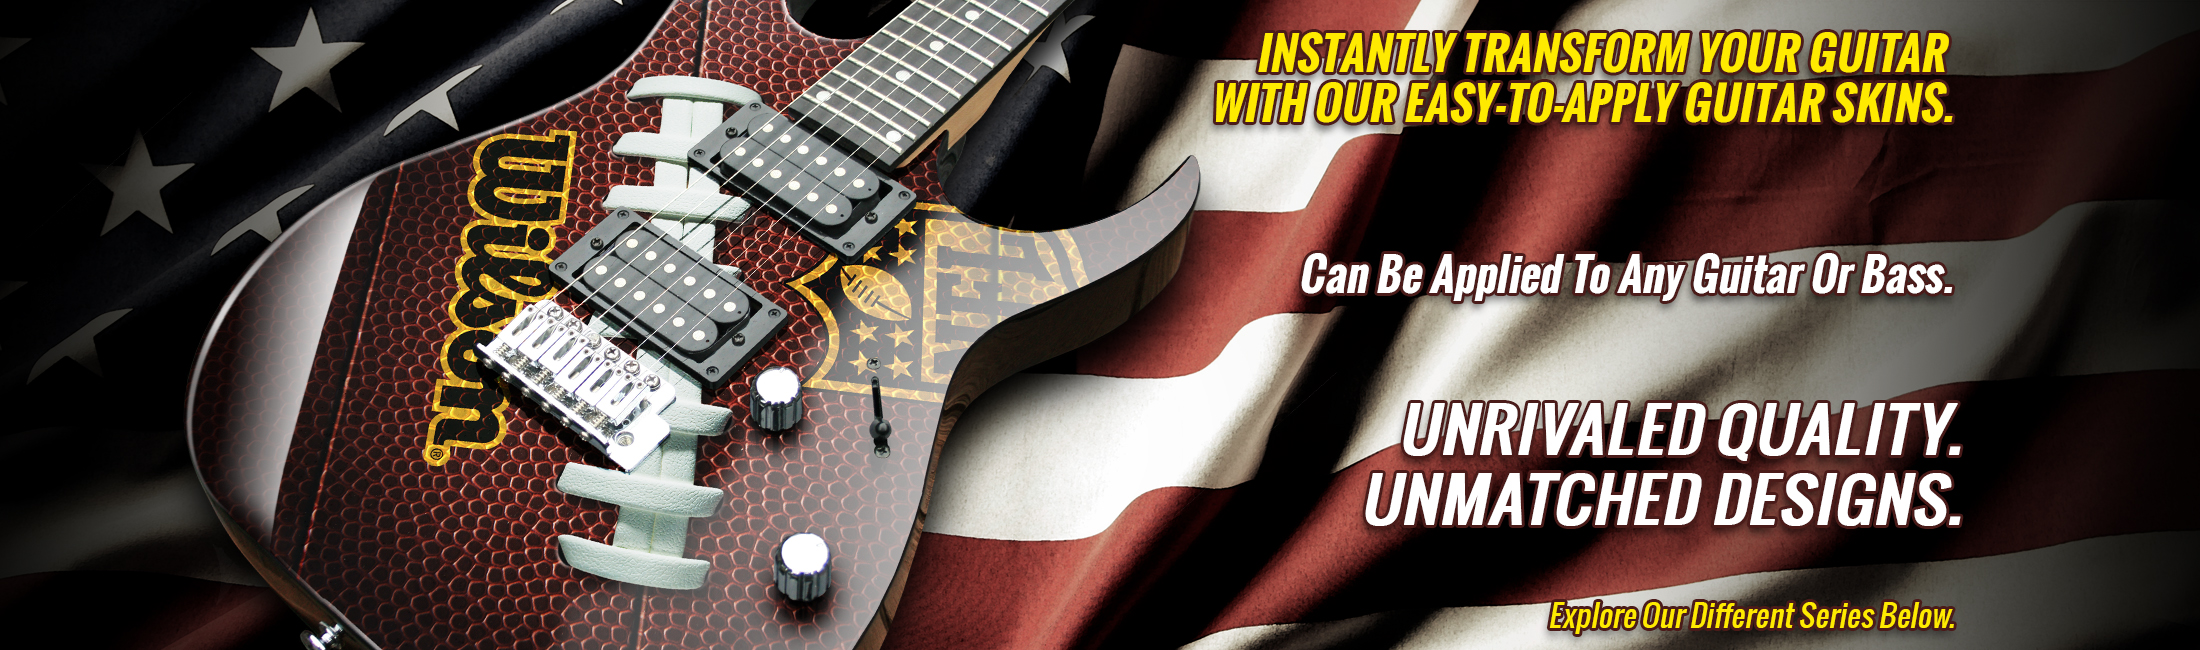 INZANE SKINS - Reskin Your Guitar With These Insanely Wicked Designs